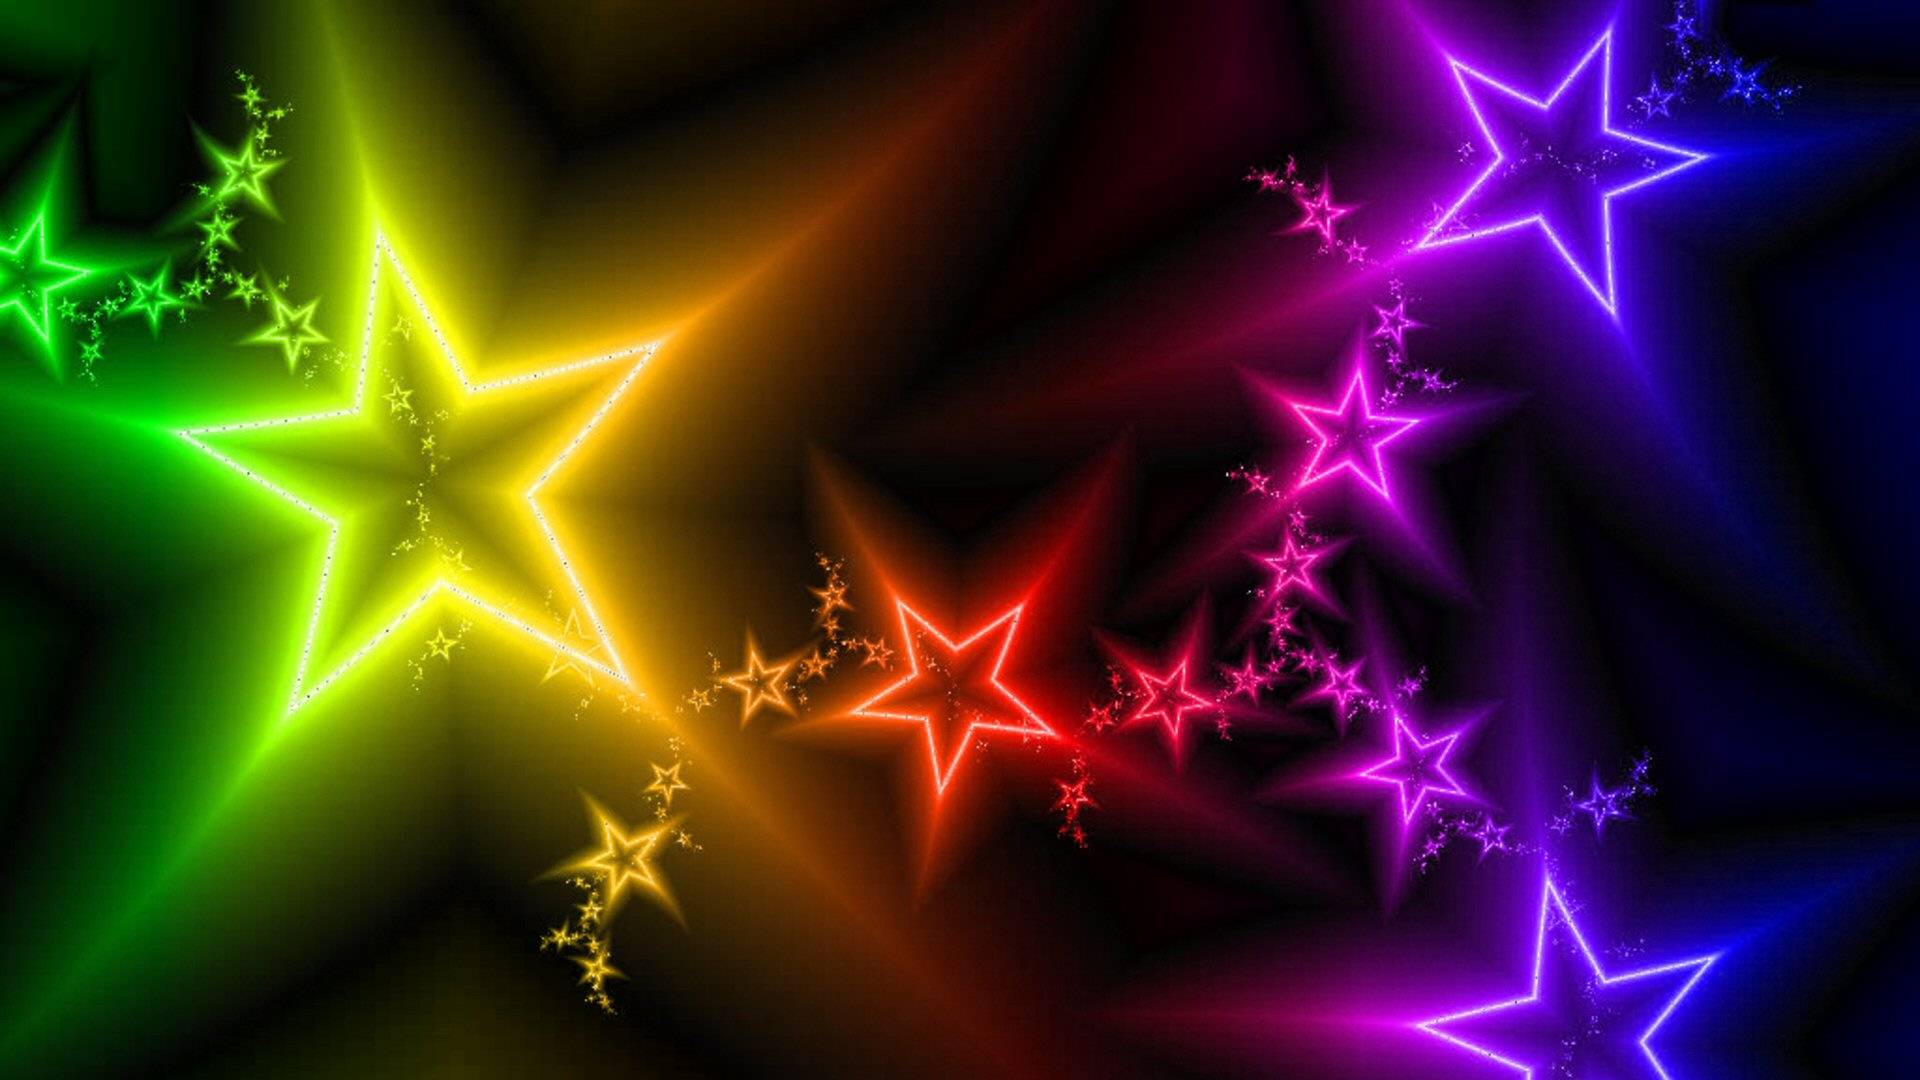 colored stars cool full hd wallpapers for desktop 1920x1080 1920x1080